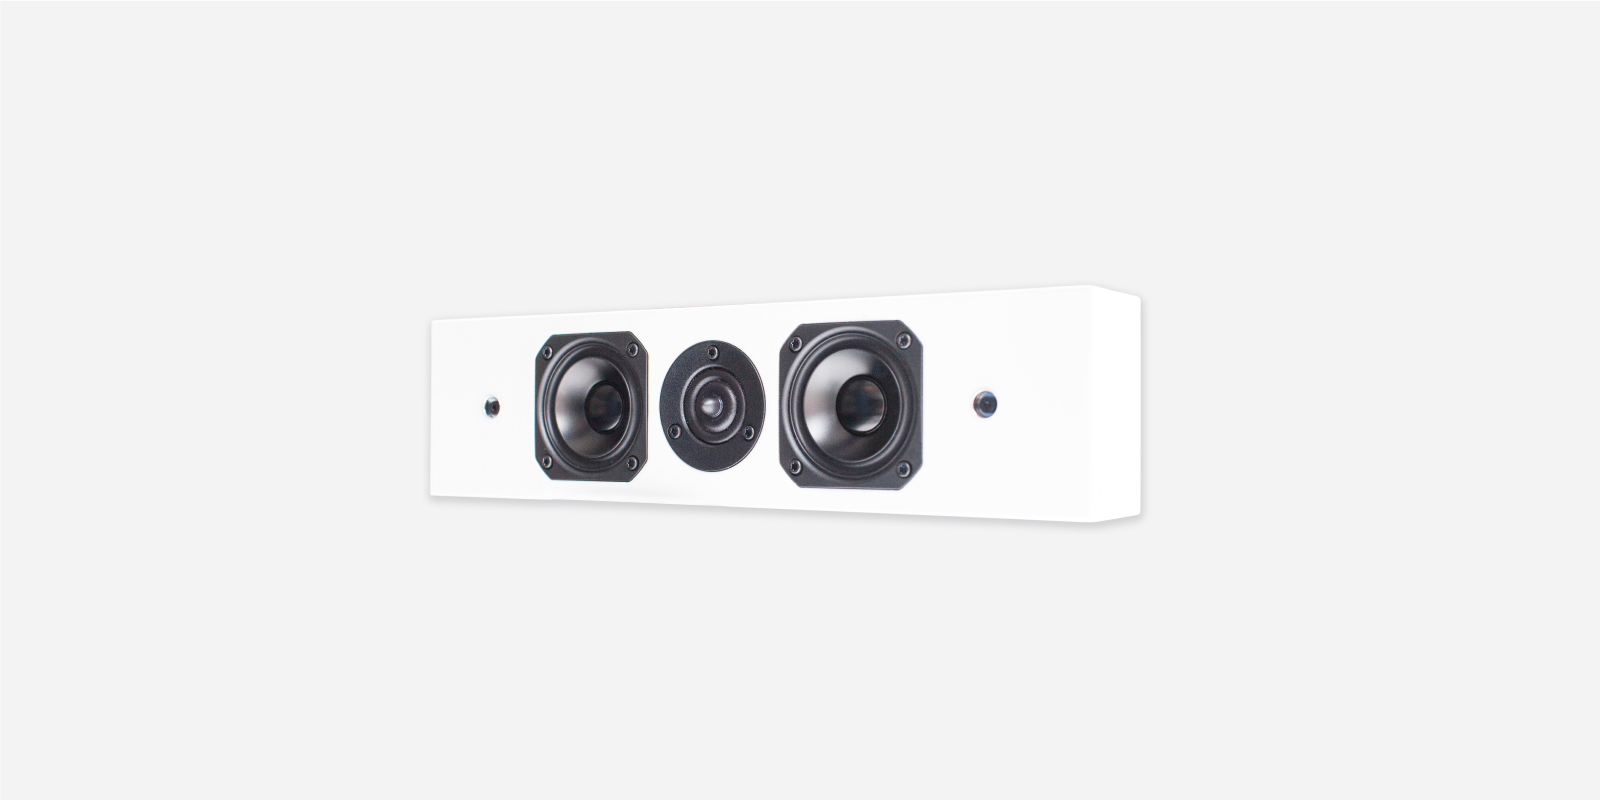 Artcoustic_C-1-Soundbar-SL-white_GREY_updated-format_1.jpg